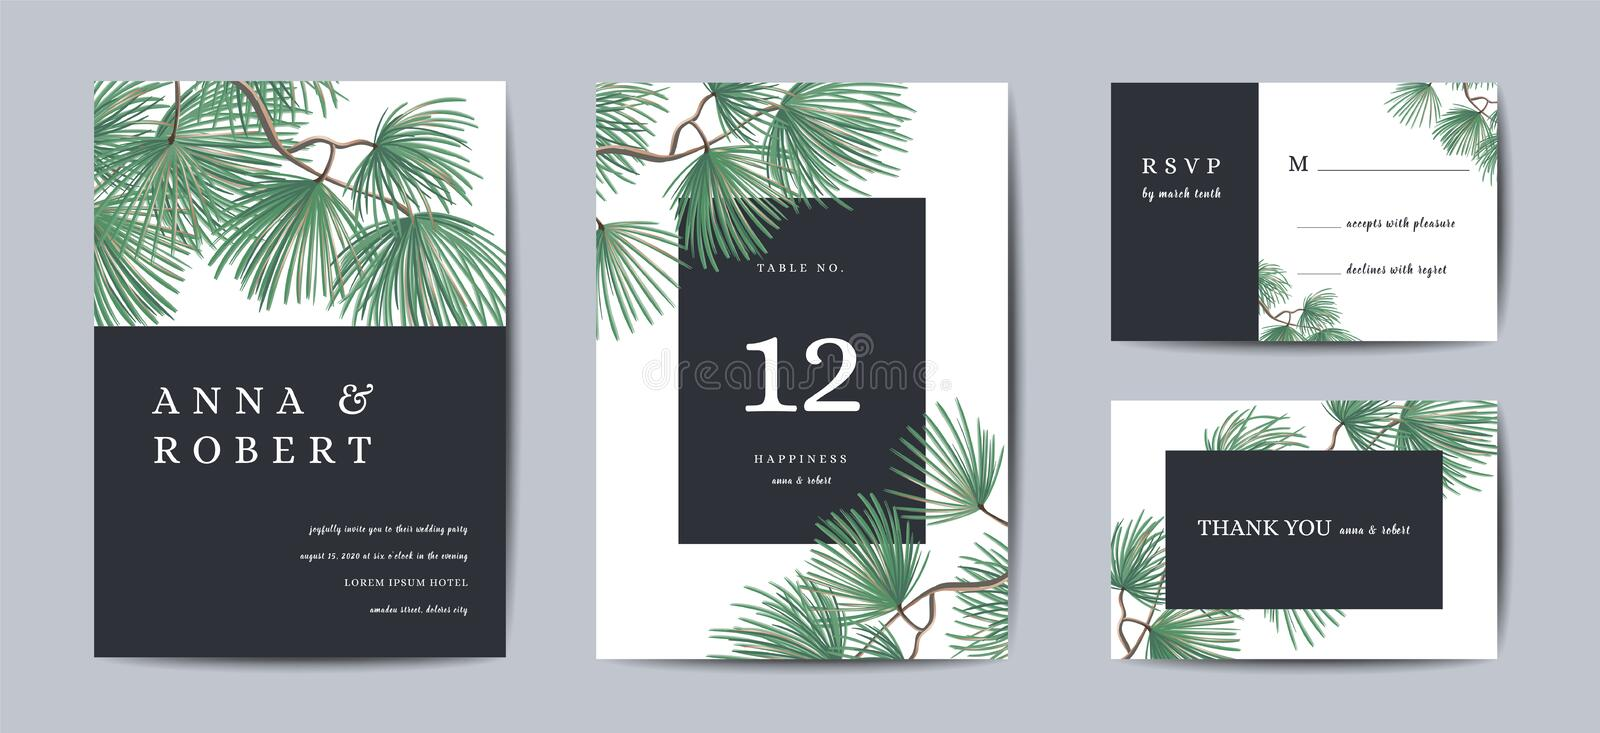 Botanical Wedding Invitation card Template Design, Pine Tree with Golden Foil, Christmas Greetings, Collection royalty free illustration